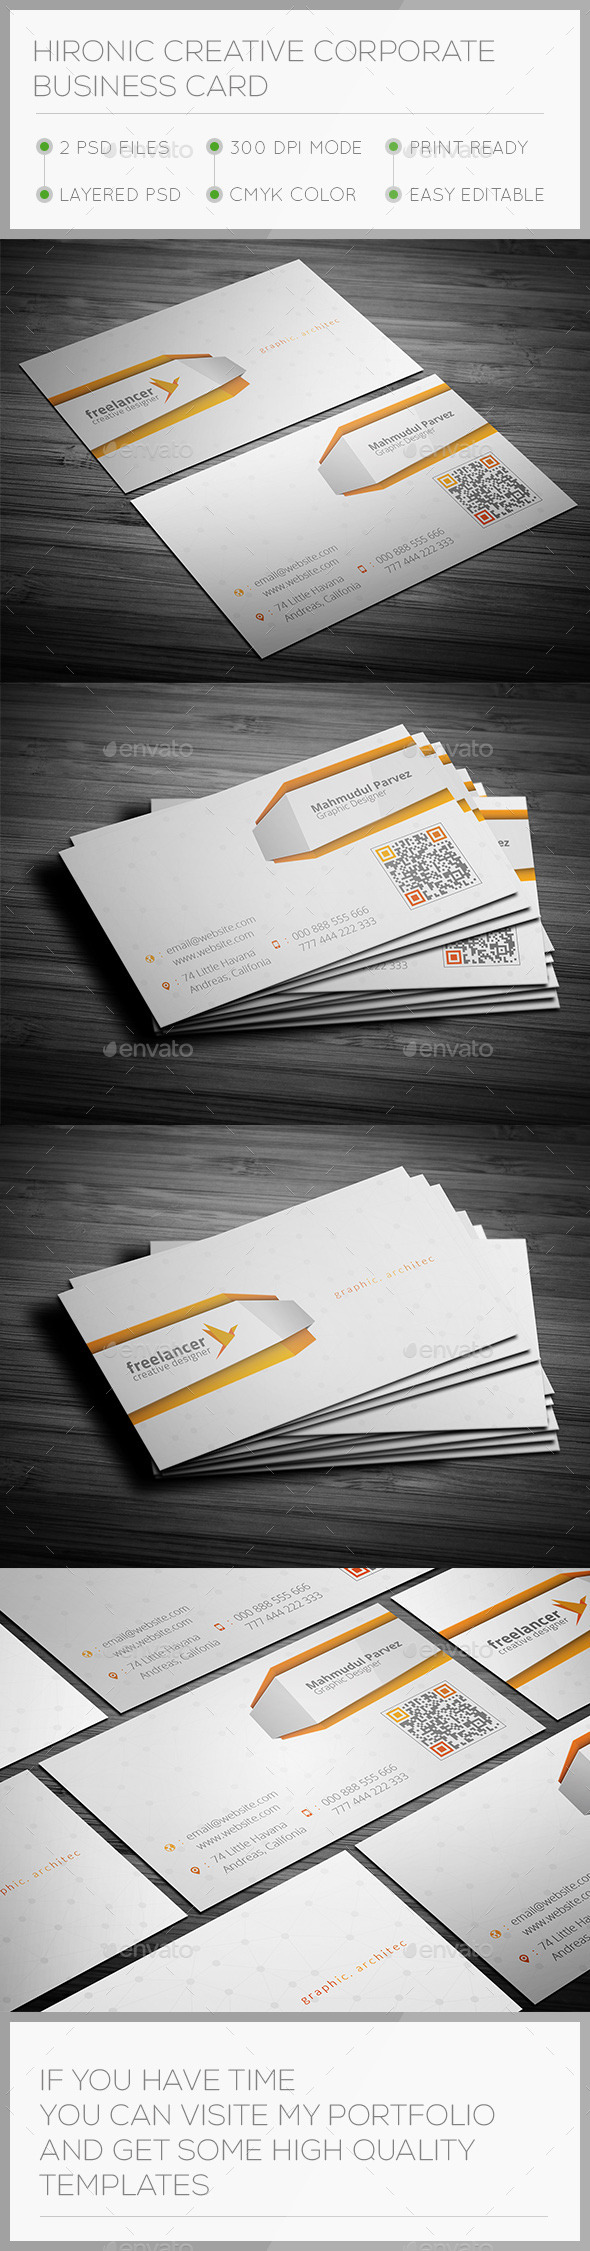 Hironic Creative Business Card - Creative Business Cards